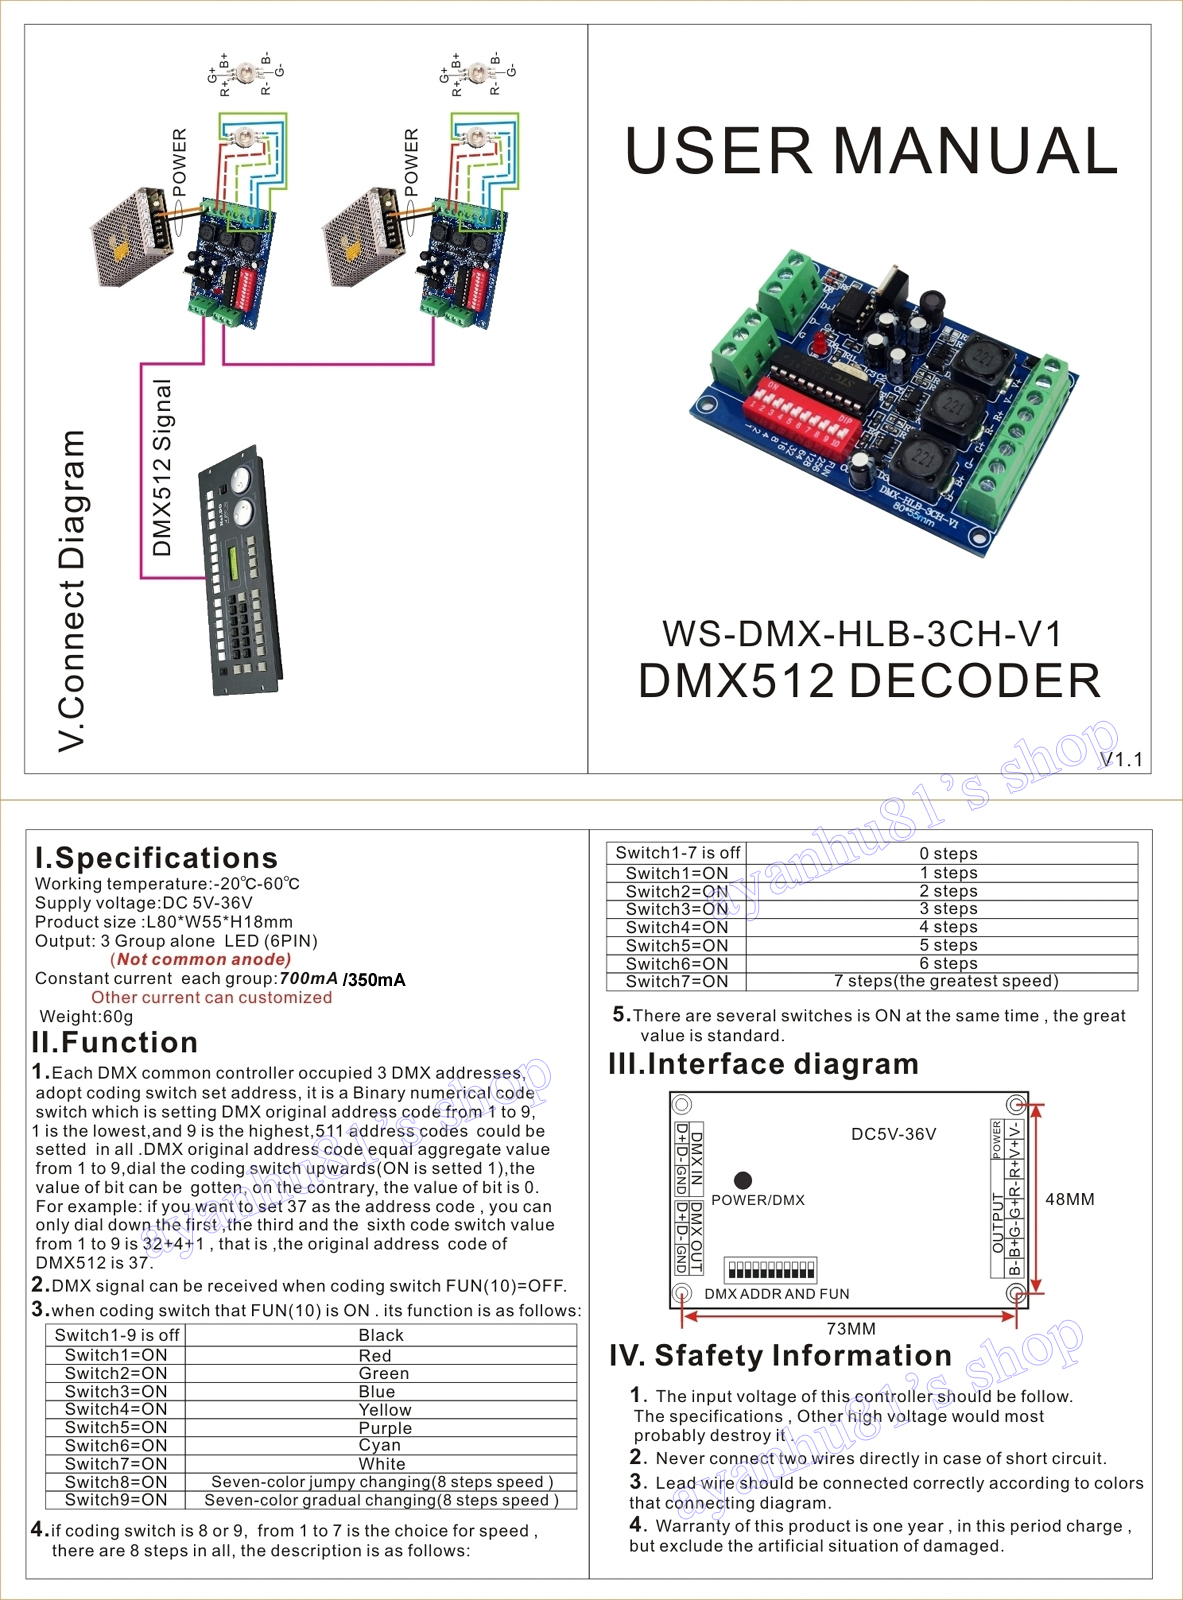 3 Channel Dmx Diagram Electrical Wiring Diagrams Xlr Dc 5 36v Constant Current 350 700ma Controller 512 Rgb Pin